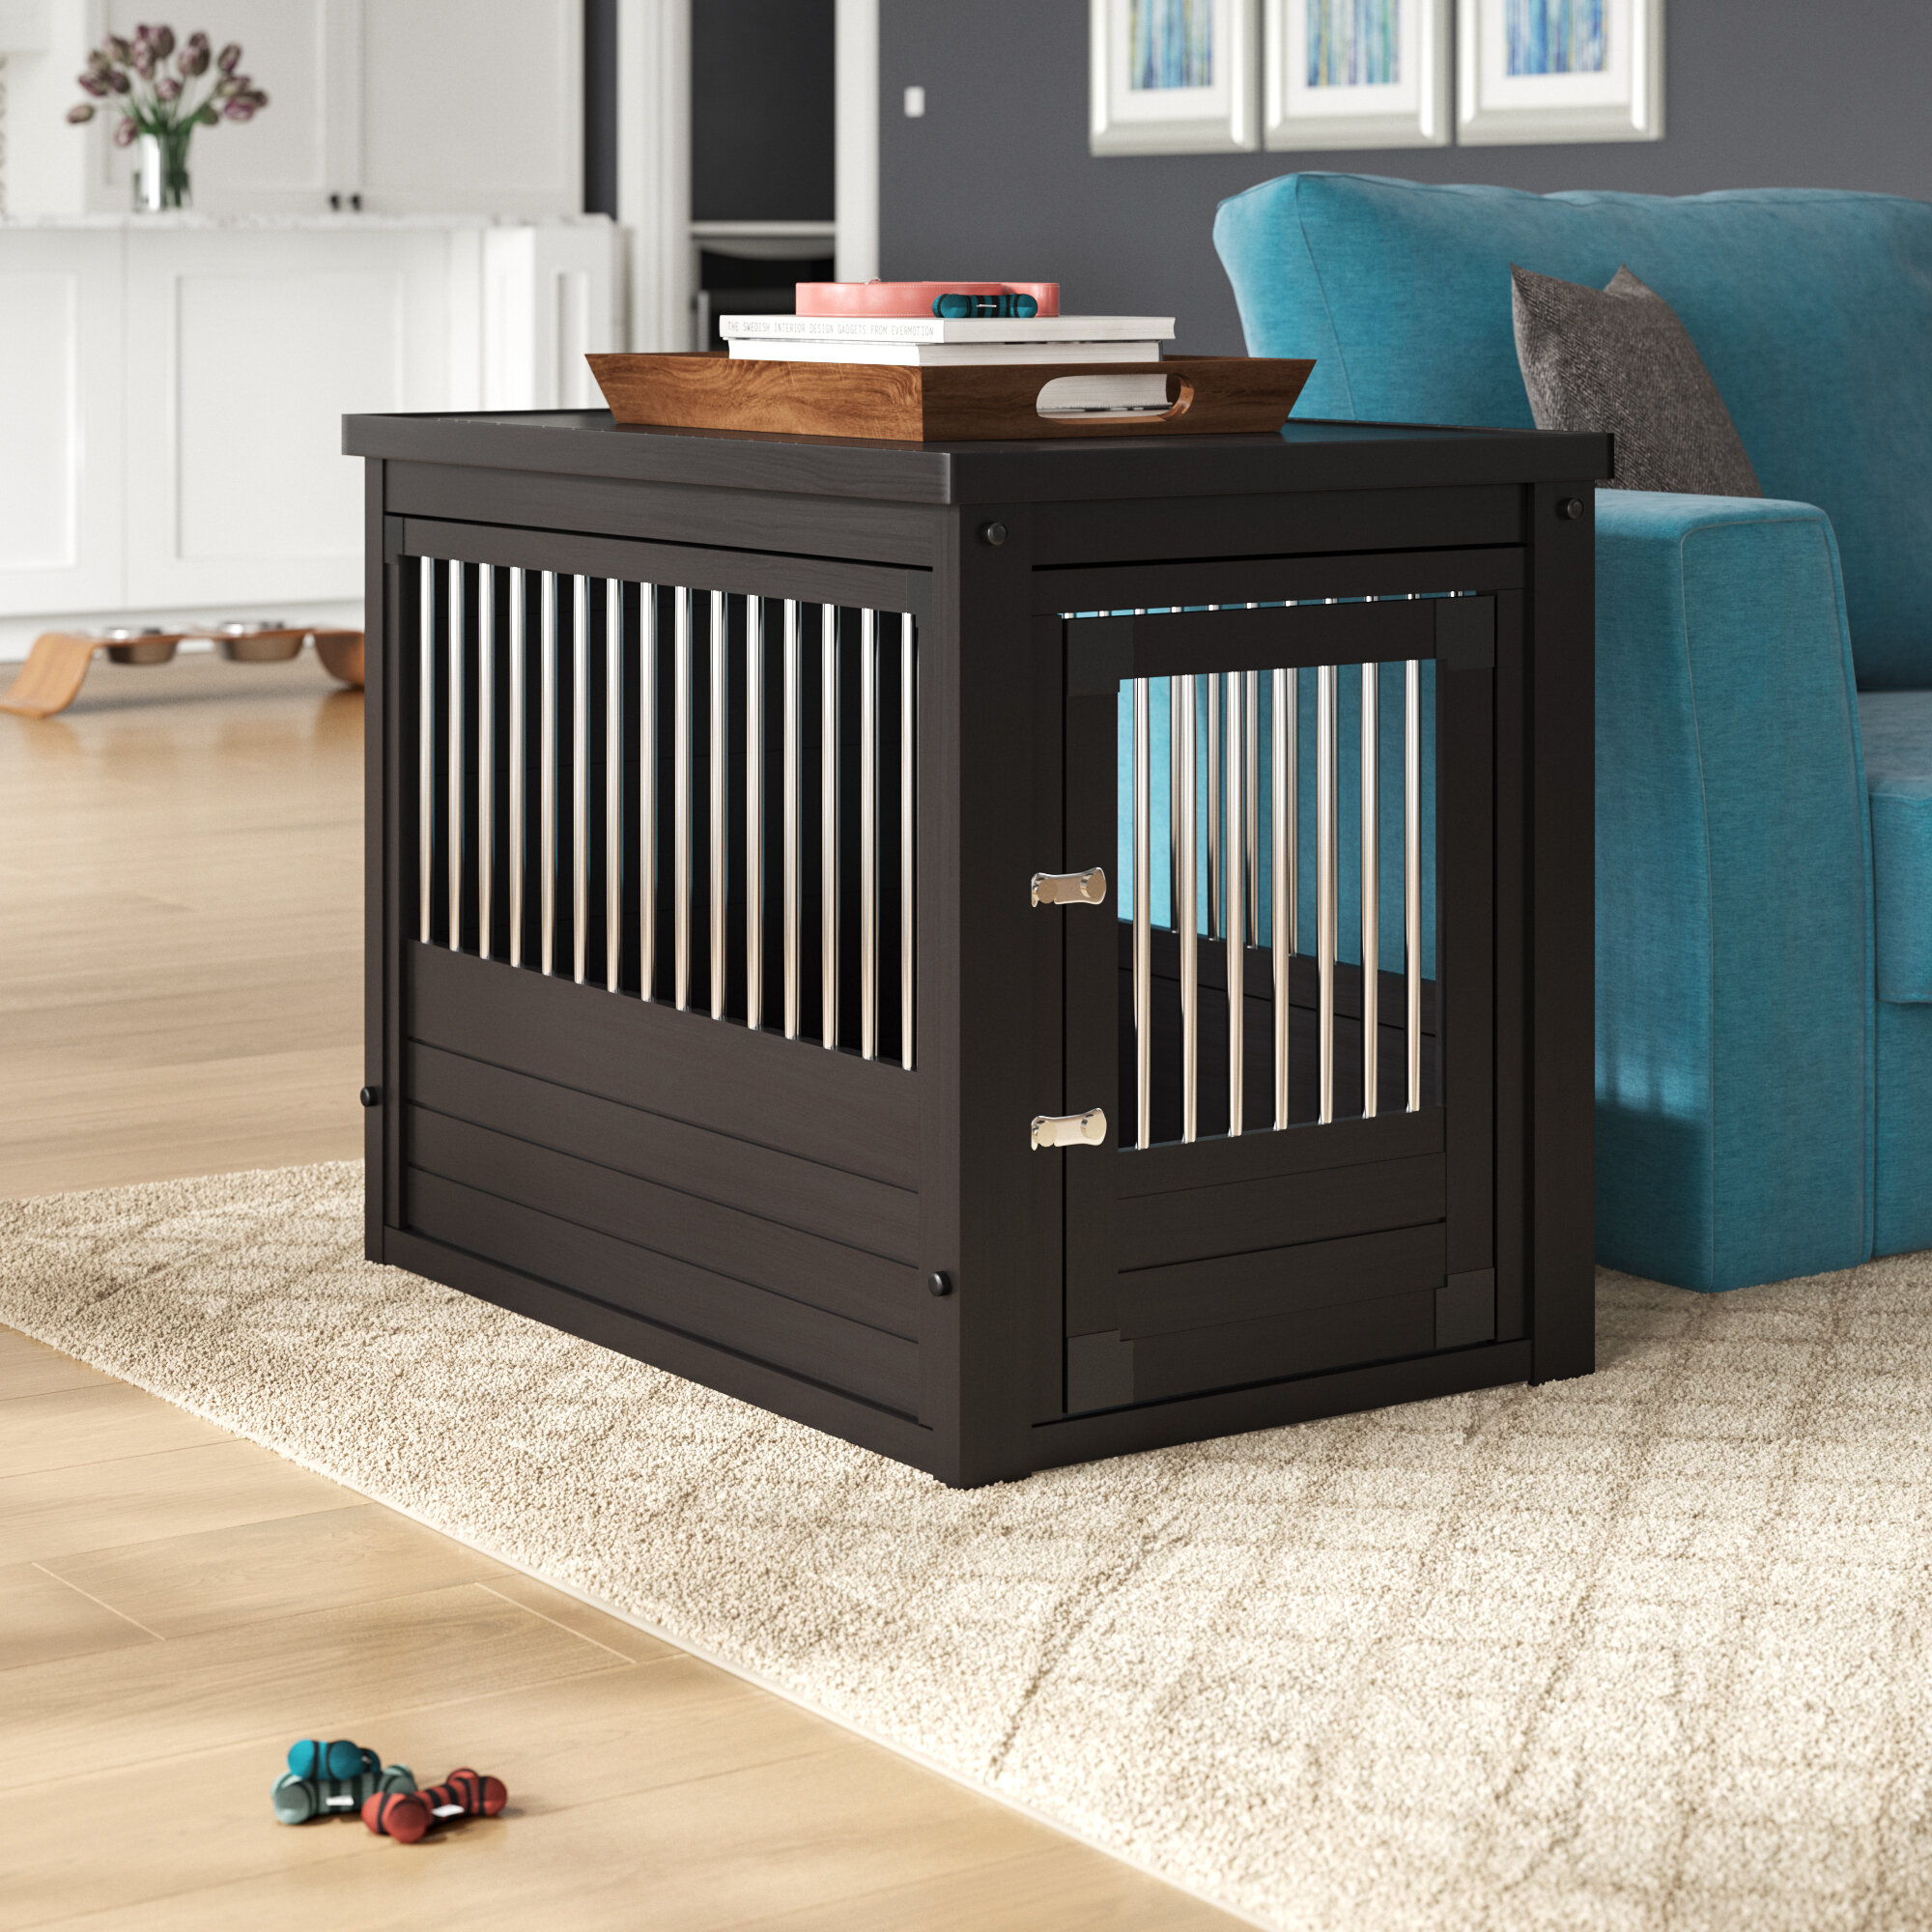 Designer Dog Crates Furniture | Wayfair